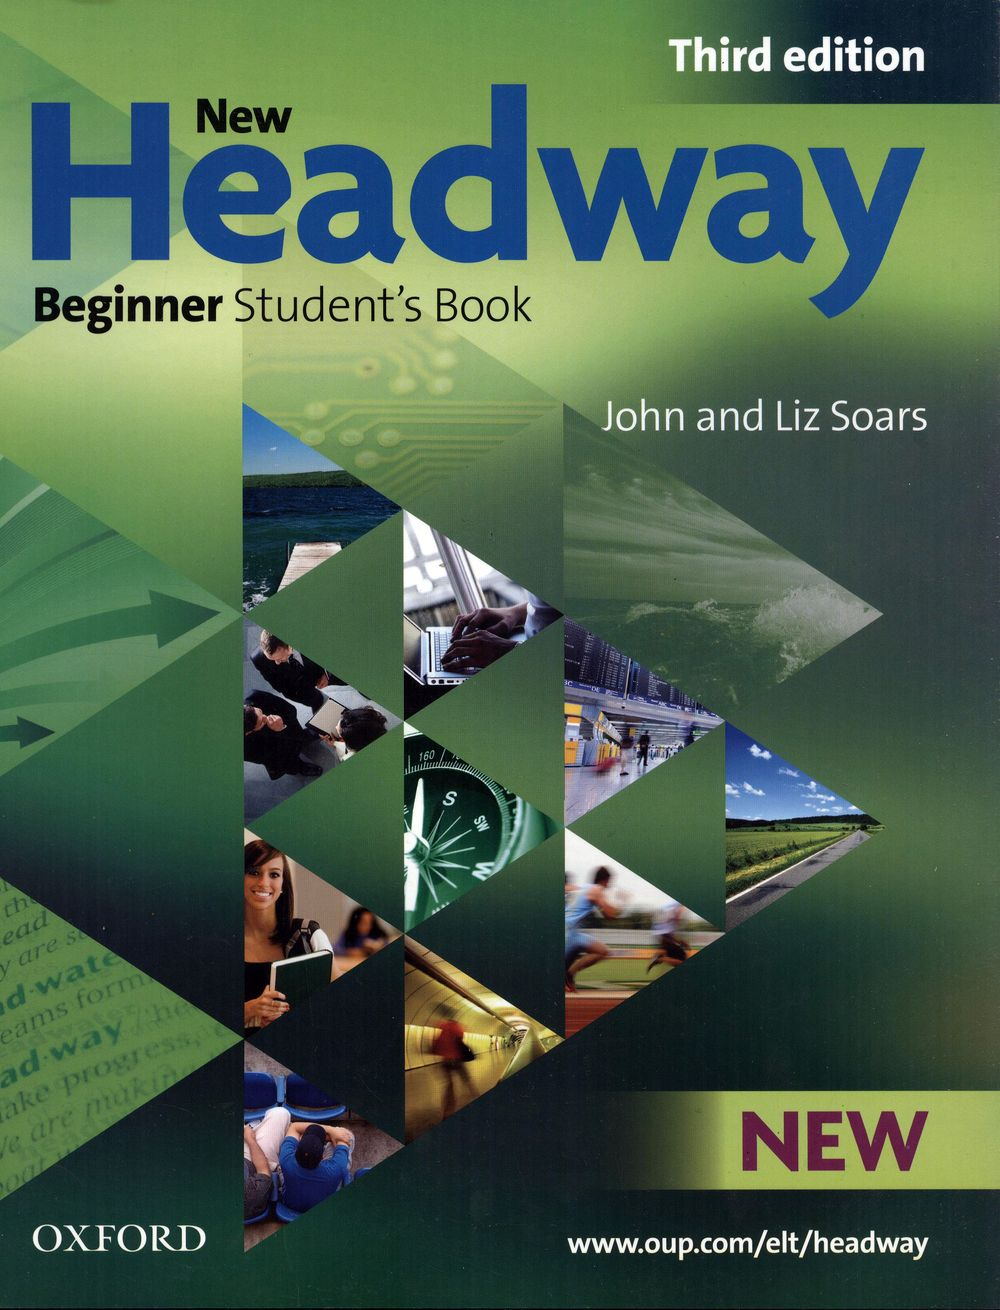 New Headway Beginner Student Book 3rd Edition Free Download